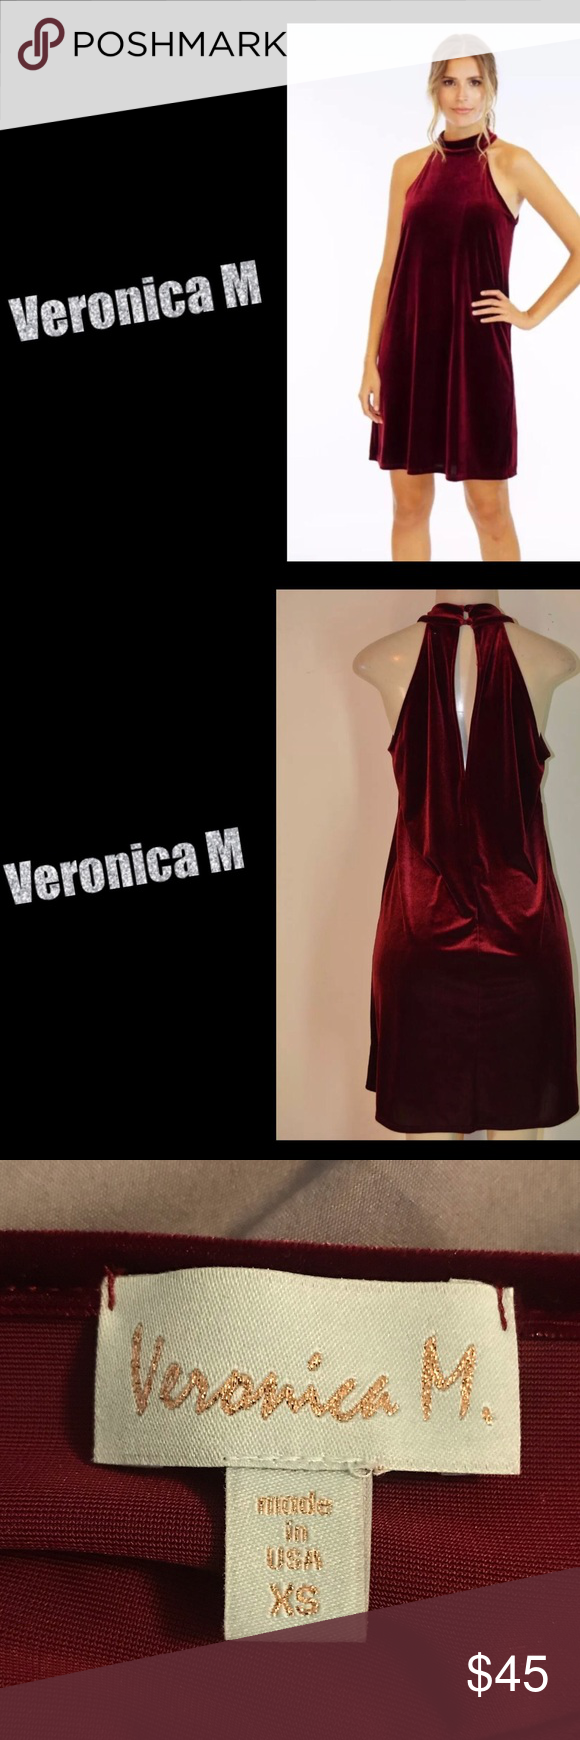 73833d449e2 Veronica M Velvet Dress - XS Veronica M Velvet Halter Dress. NWOT. Size XS.  Smoke free home. Veronica M Dresses Mini